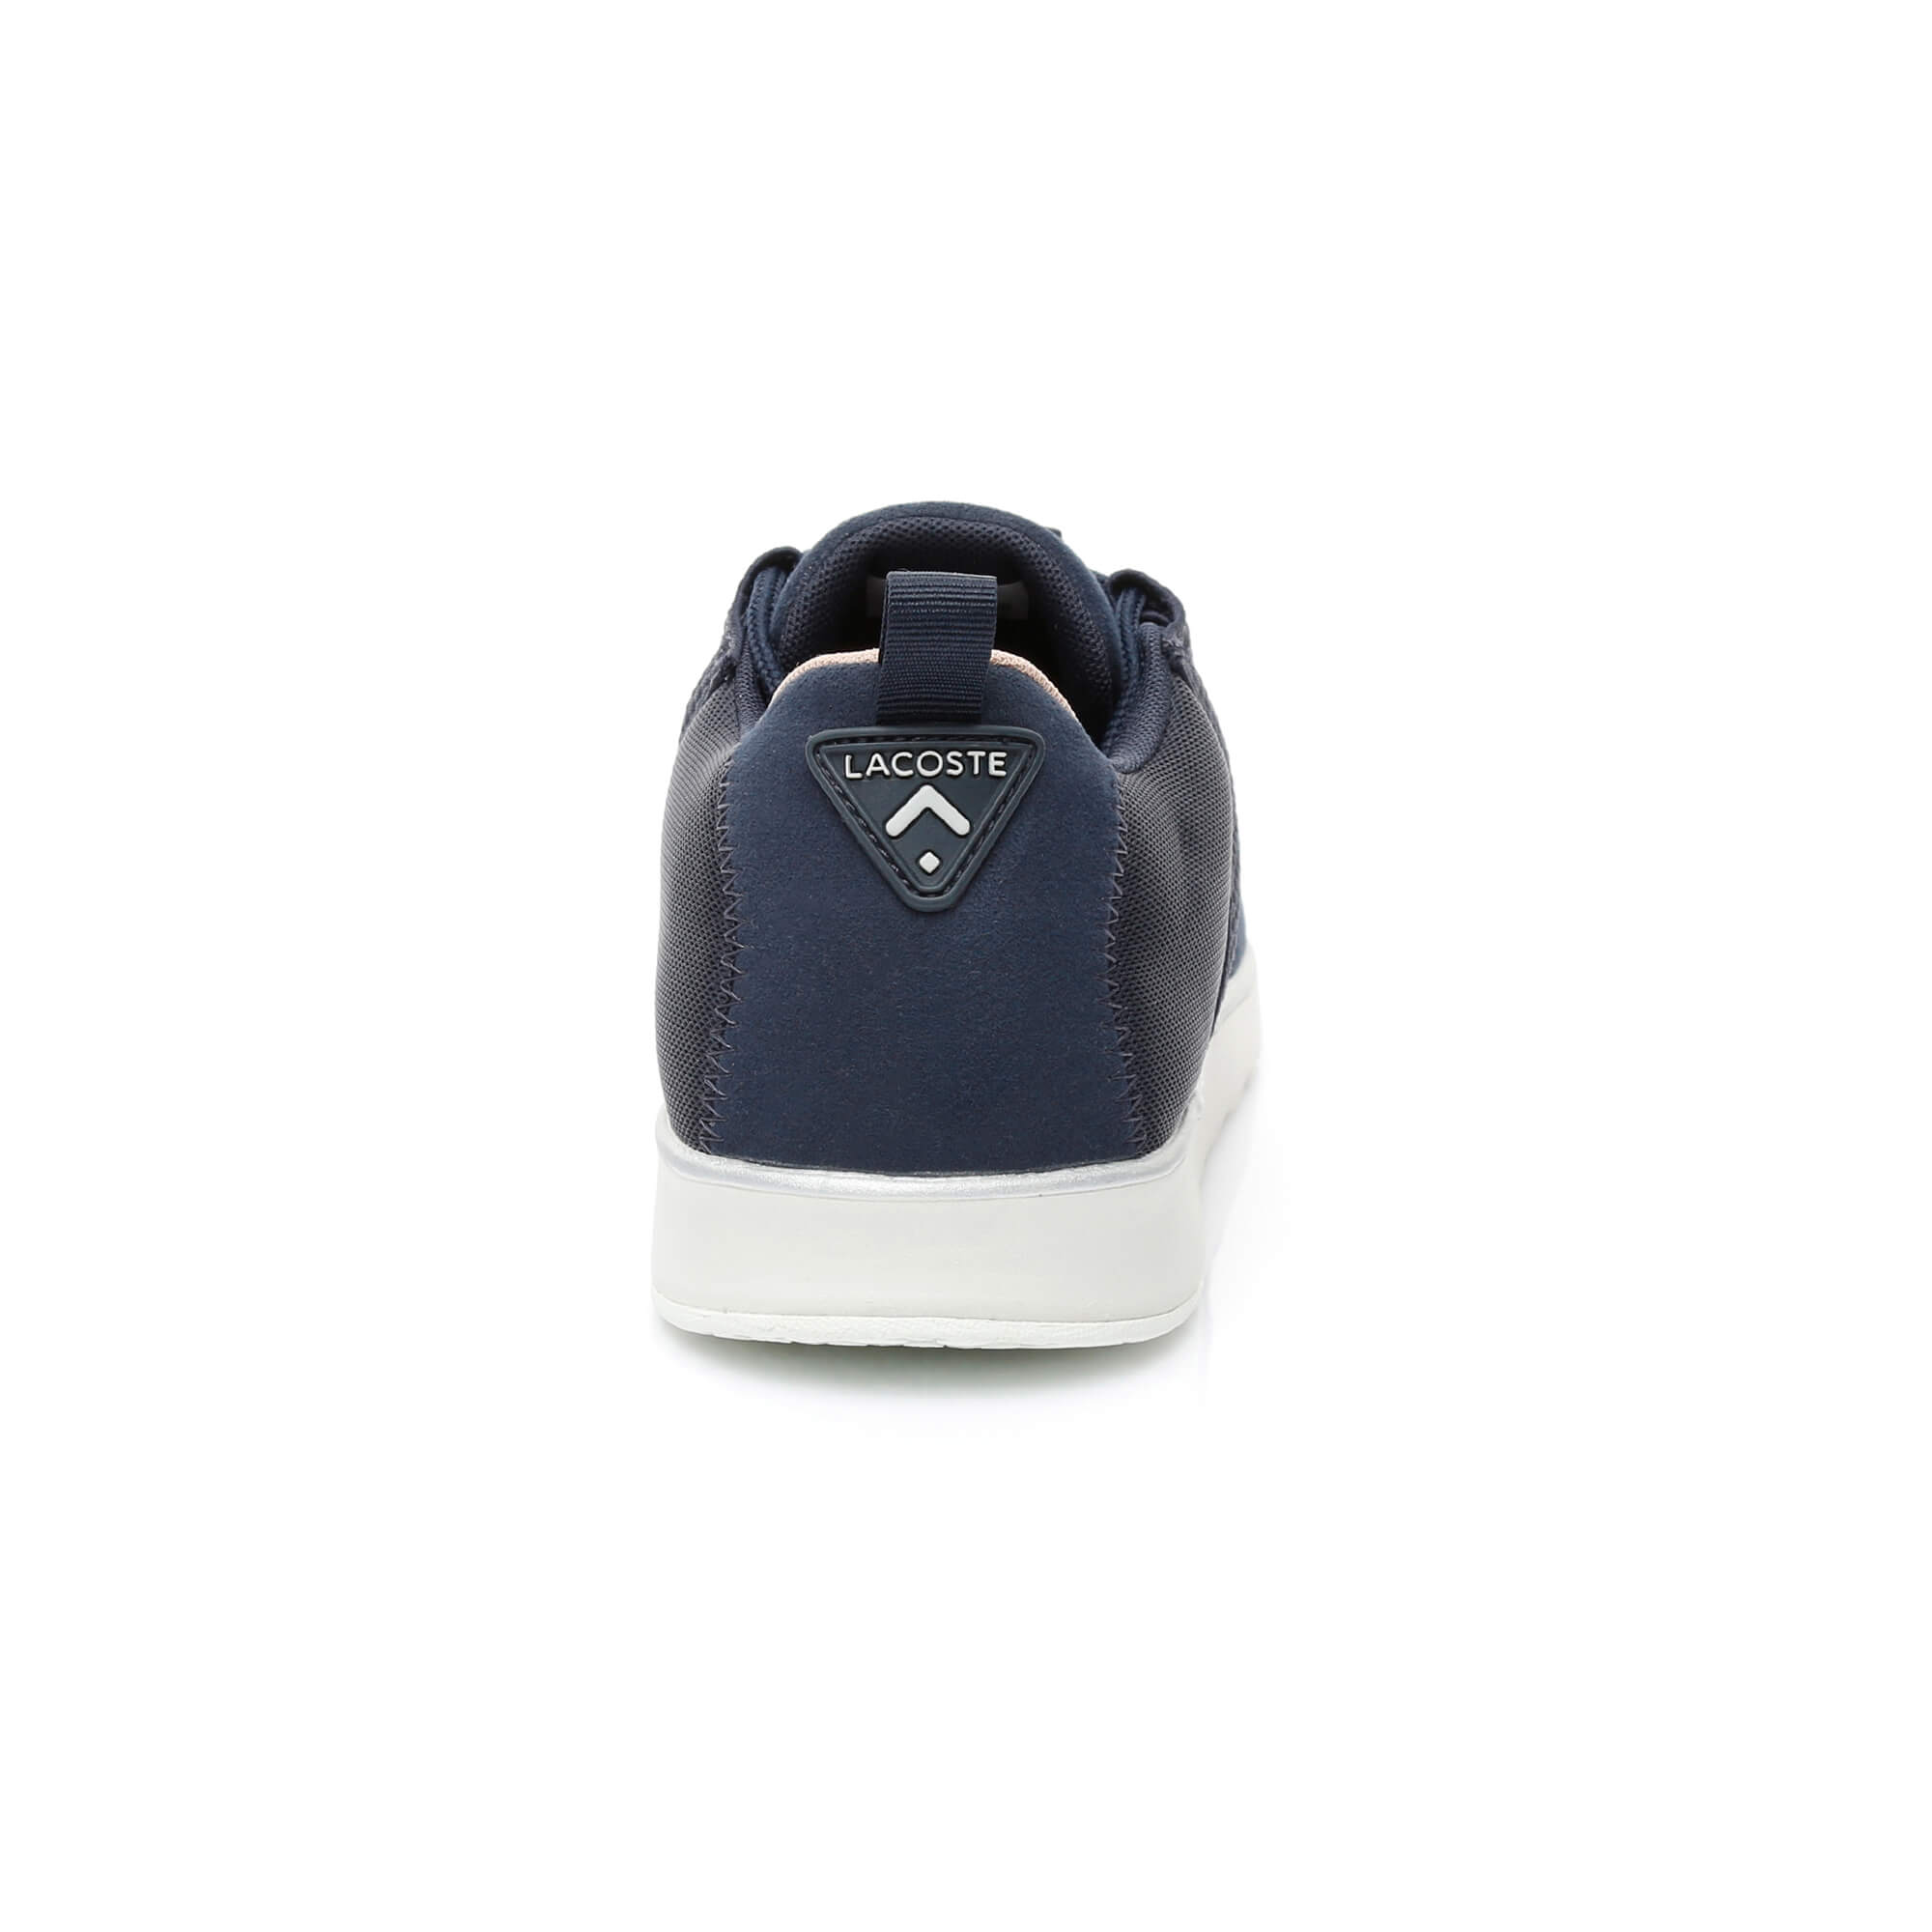 Lacoste Men's Light Textile Trainers